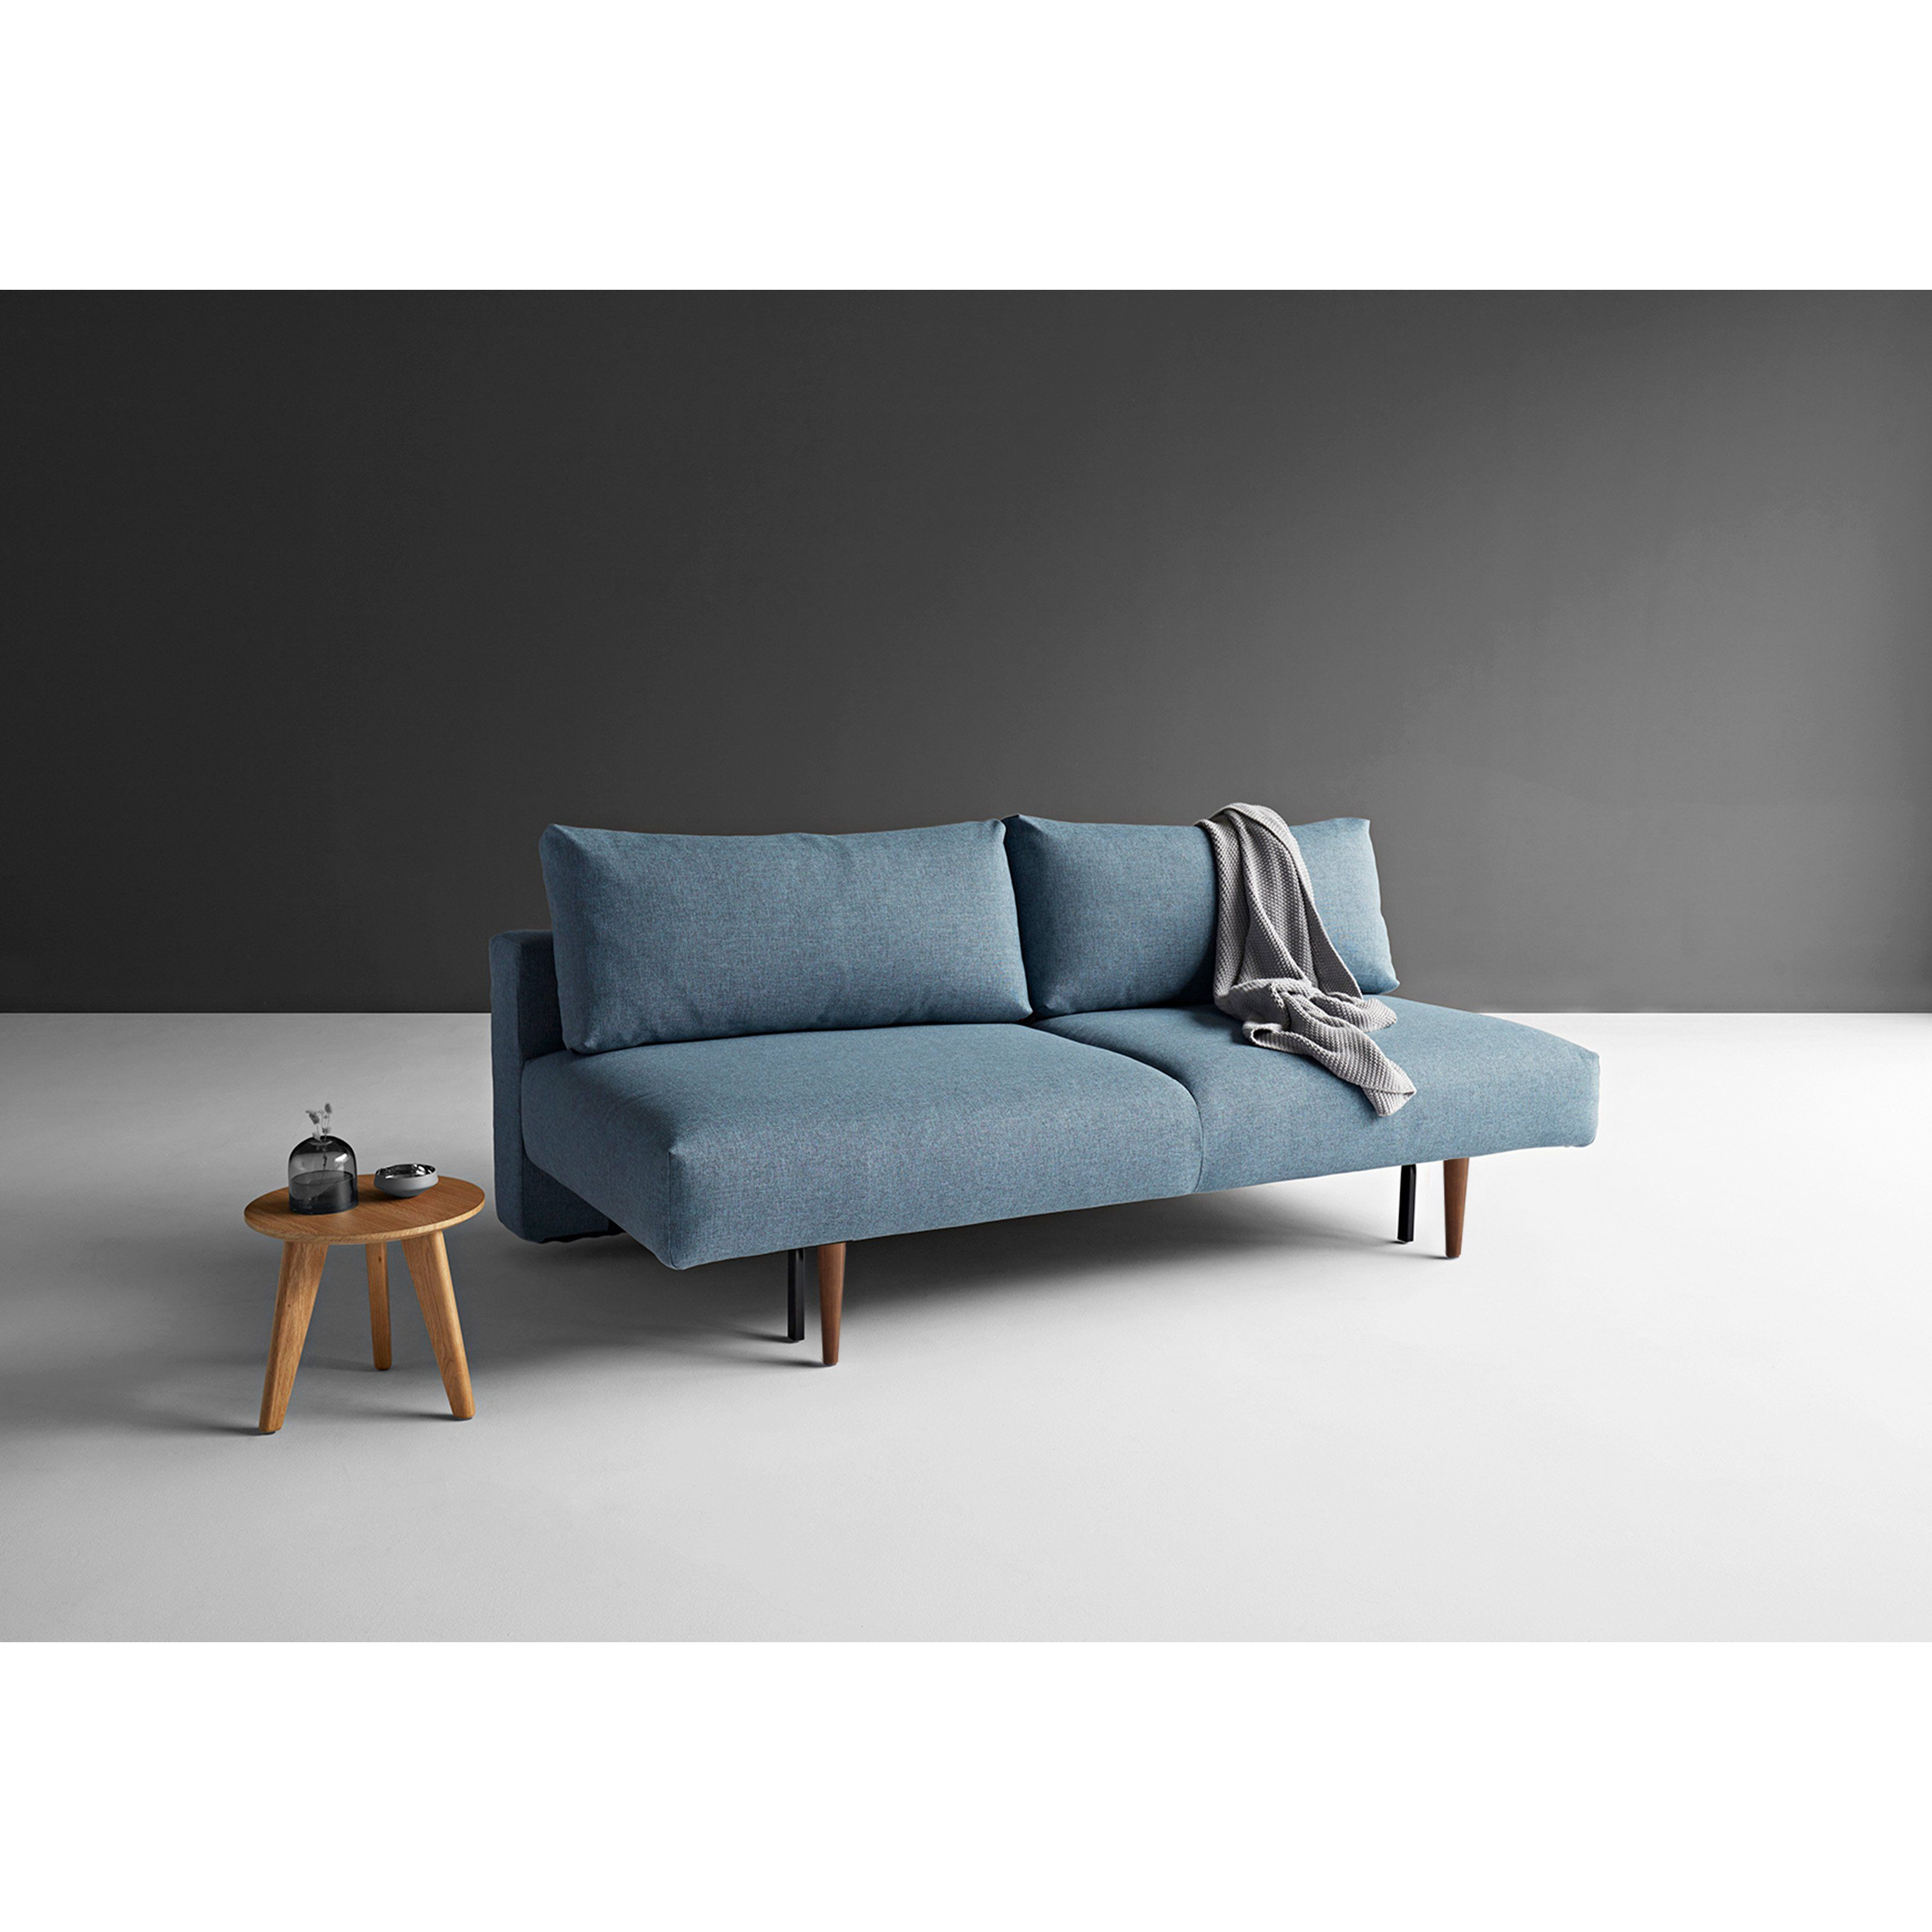 Pleasant Innovation Living Frode Sofa 742048525 10 3 2 Products Uwap Interior Chair Design Uwaporg